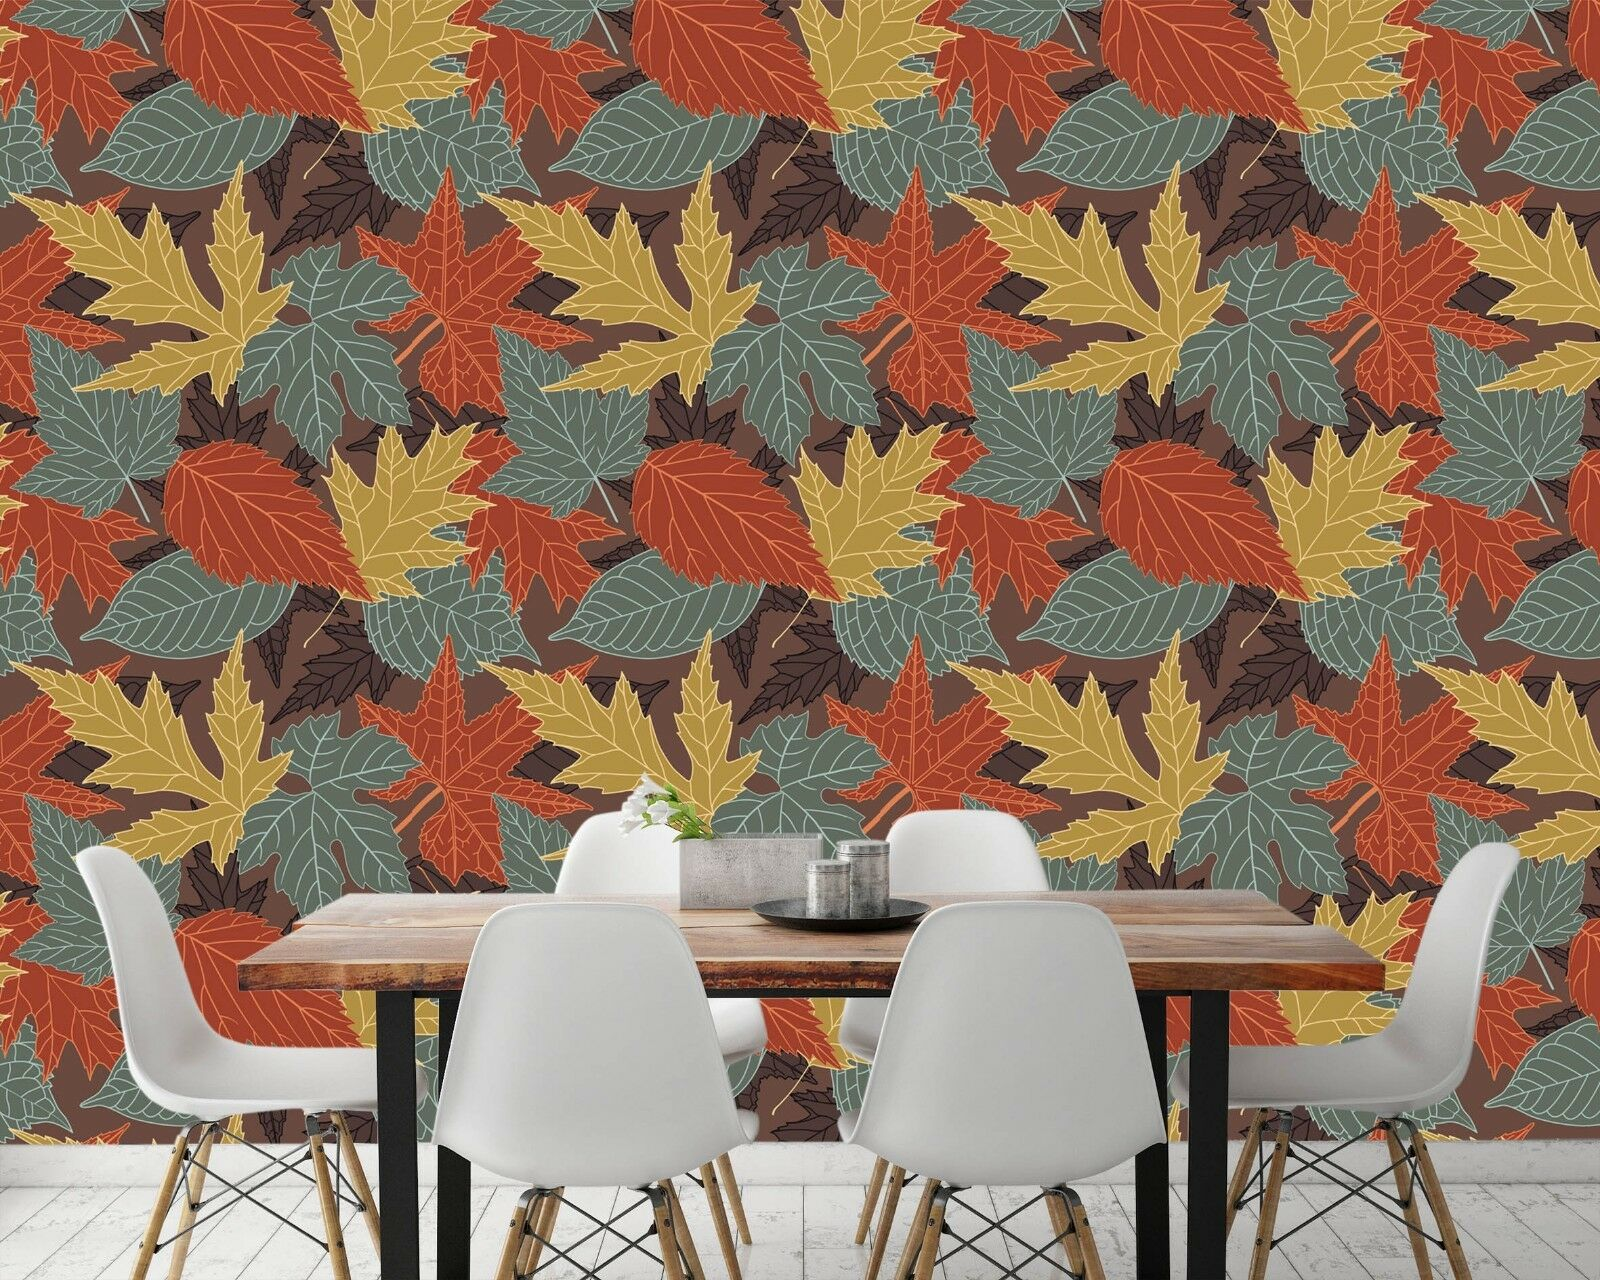 3D Maple Leaf Texture 5 Wall Paper Wall Print Decal Wall Deco Indoor Wall Murals